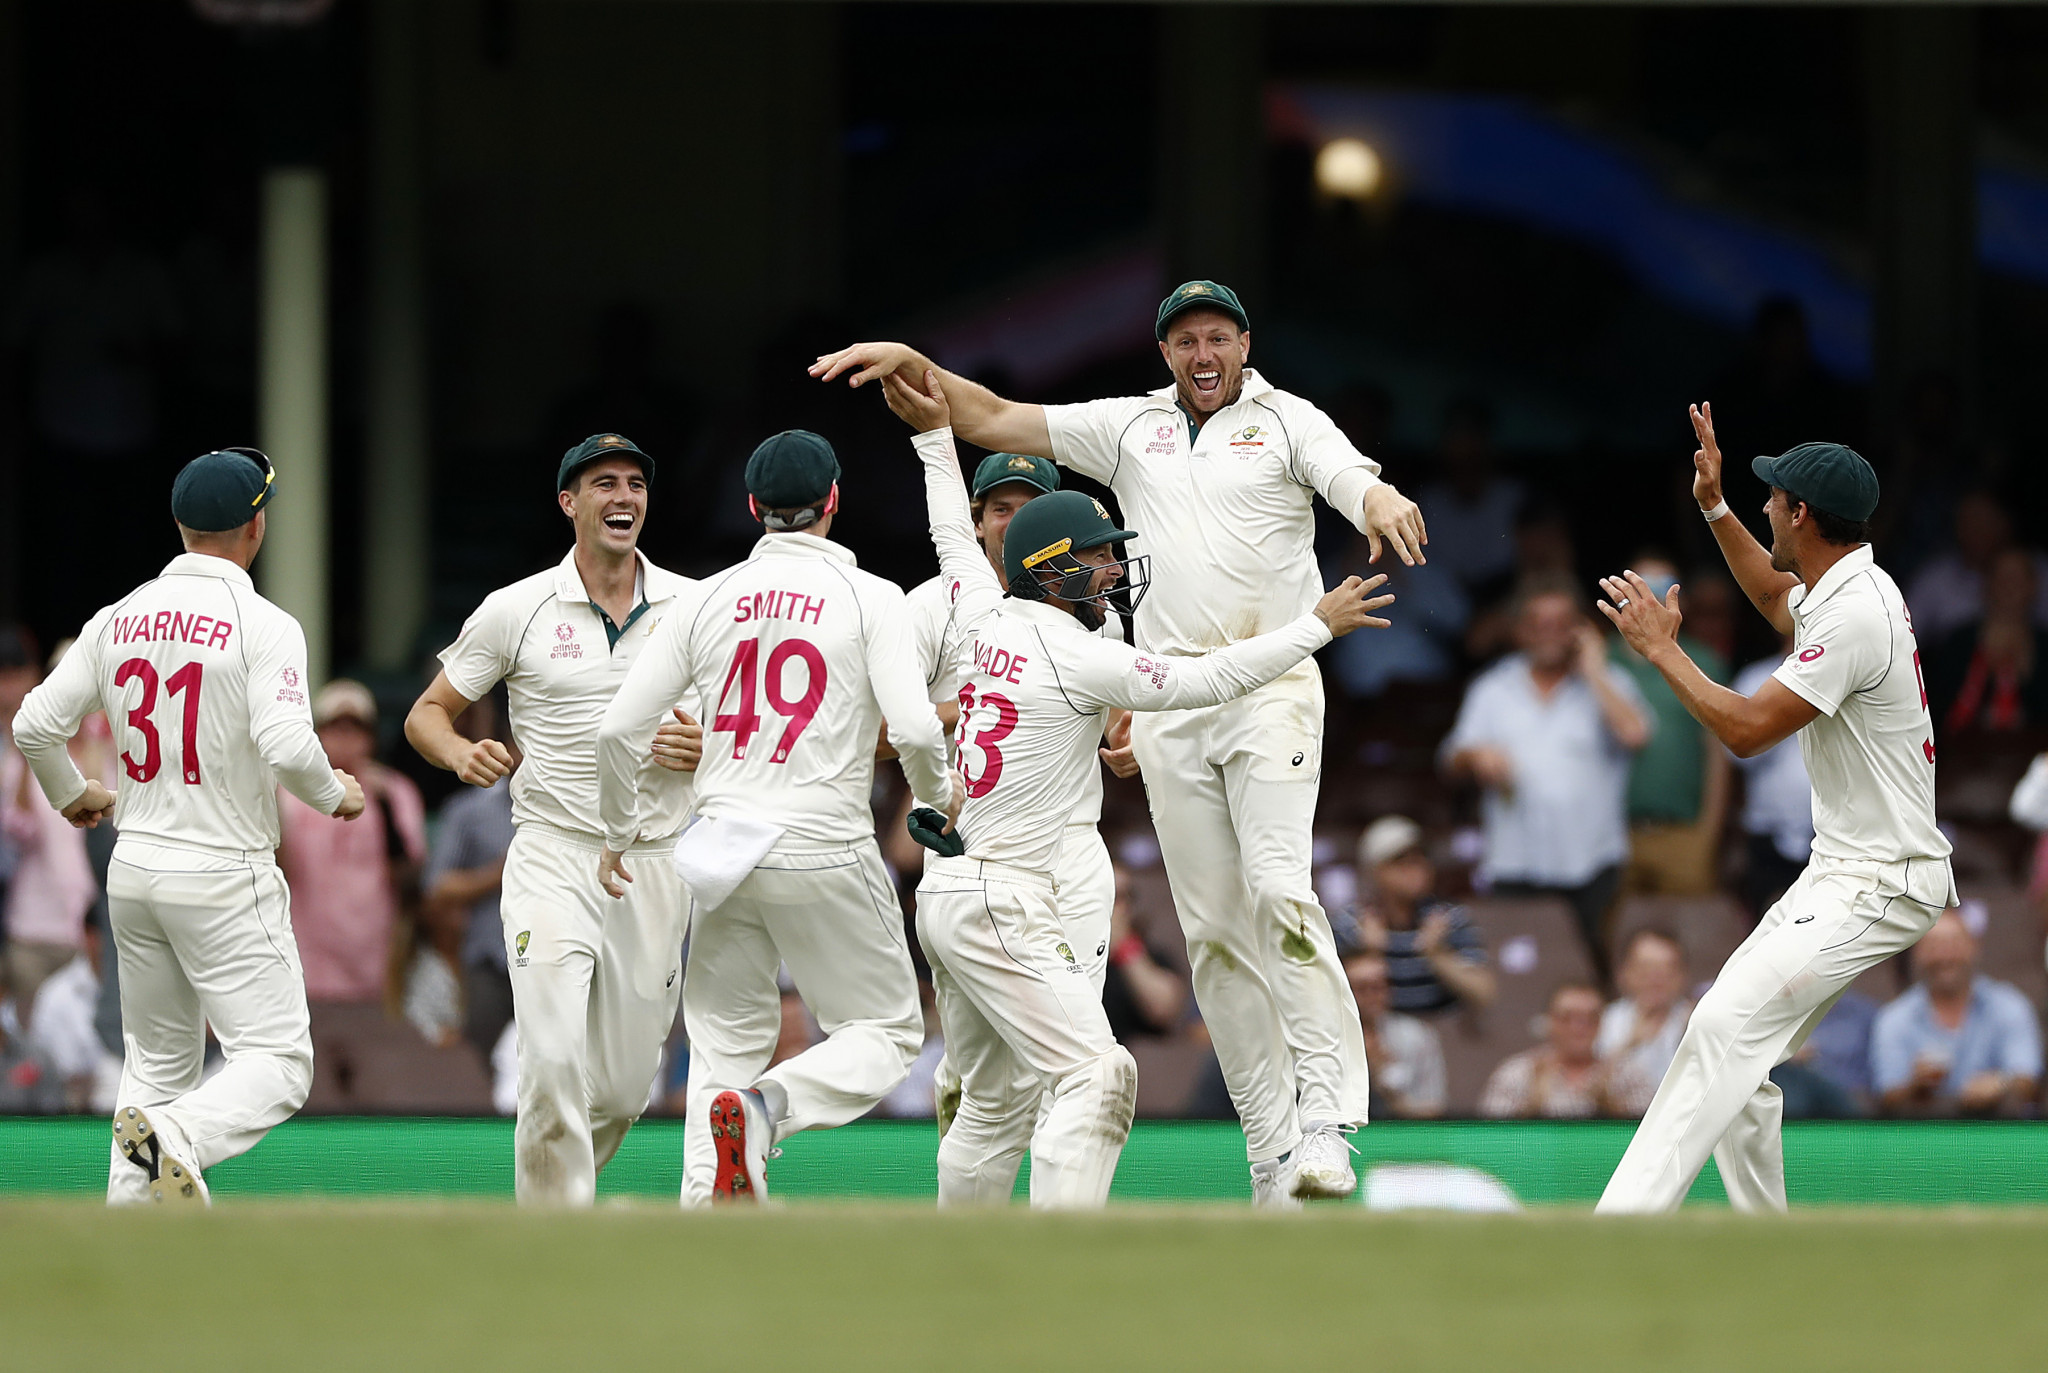 ICC changes World Test Championship points system following COVID-19 disruption